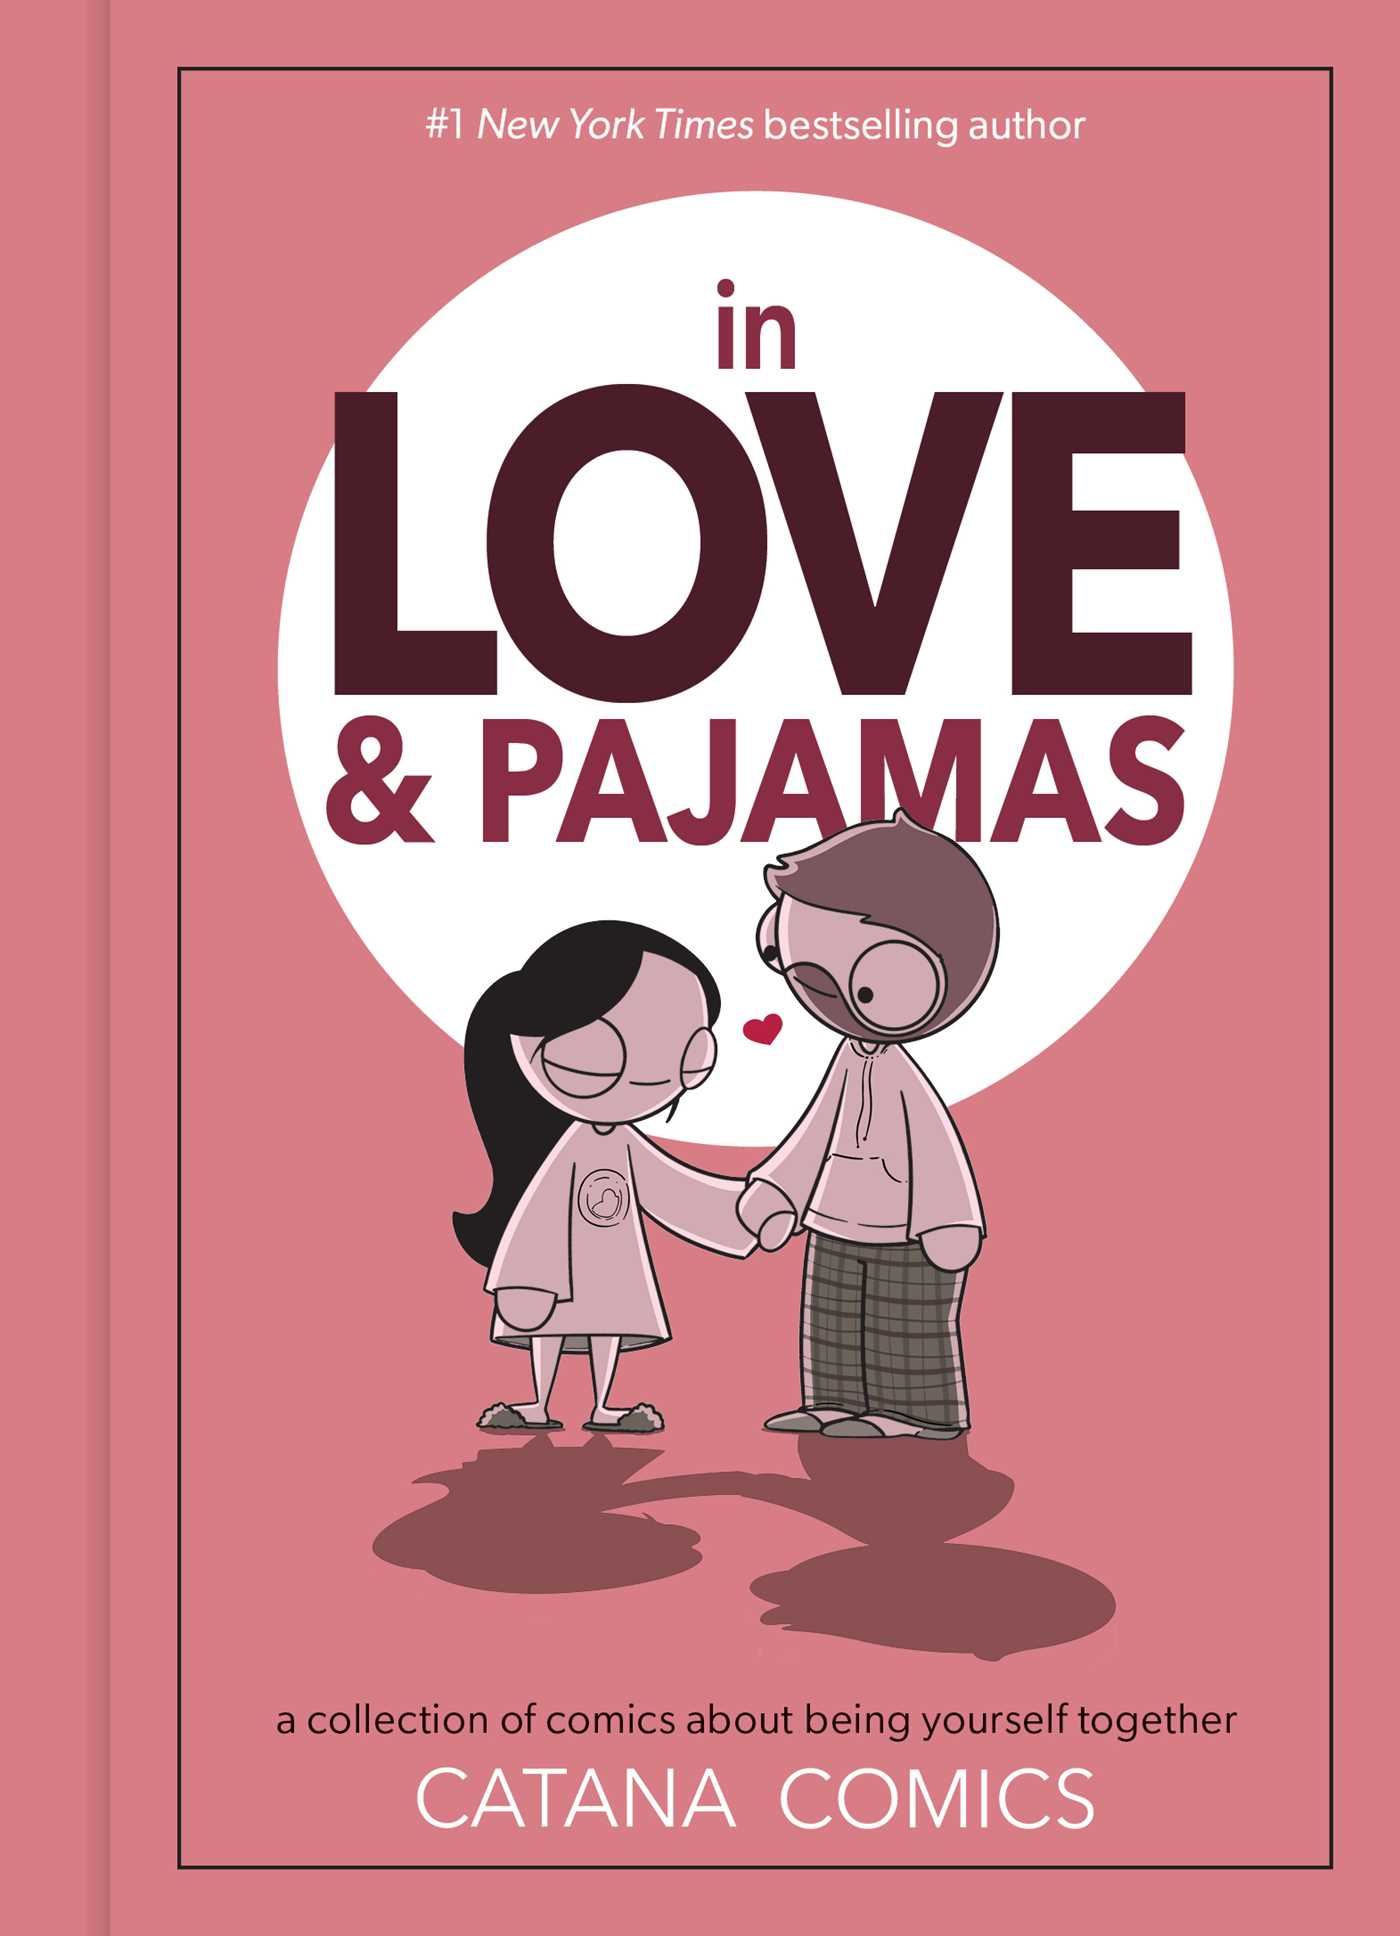 In Love & Pajamas: A Collection of Comics about Being Yourself Together, Red/Pink, Man, Woman, Love, Shadows, Comics, Humour, Relationship, Romance, Catana Chetwynd